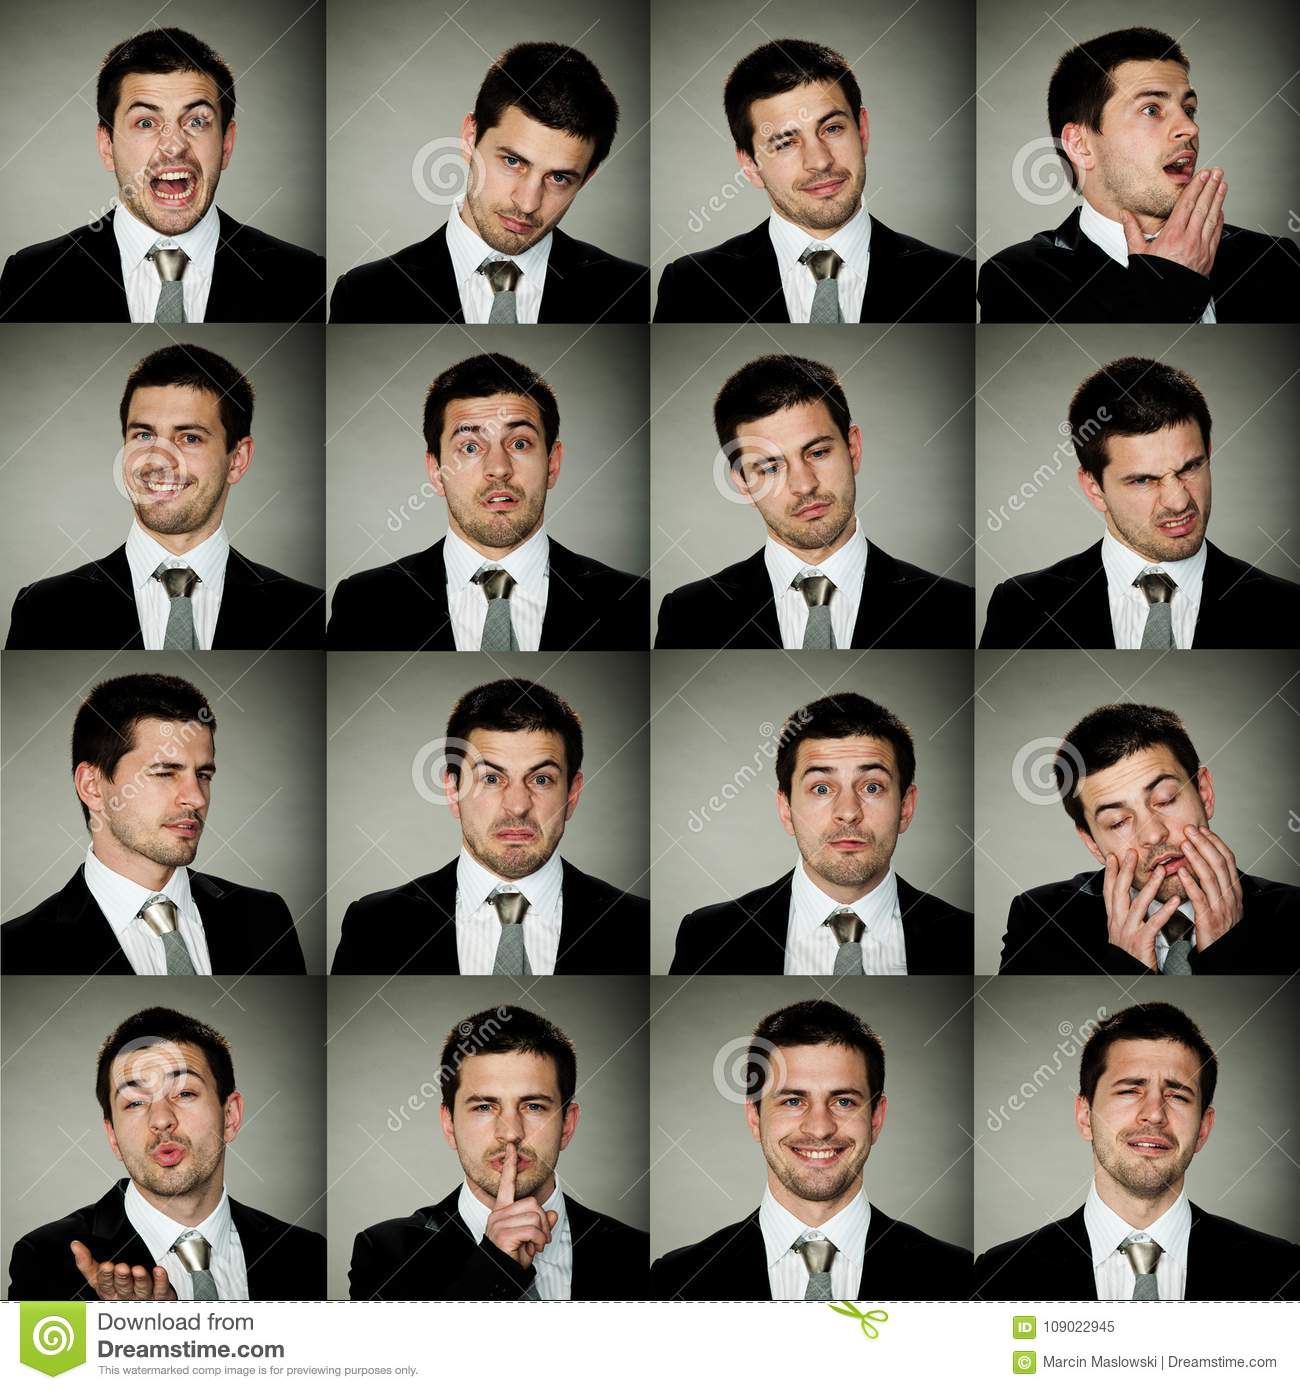 All emotions, business man in many options of emotions